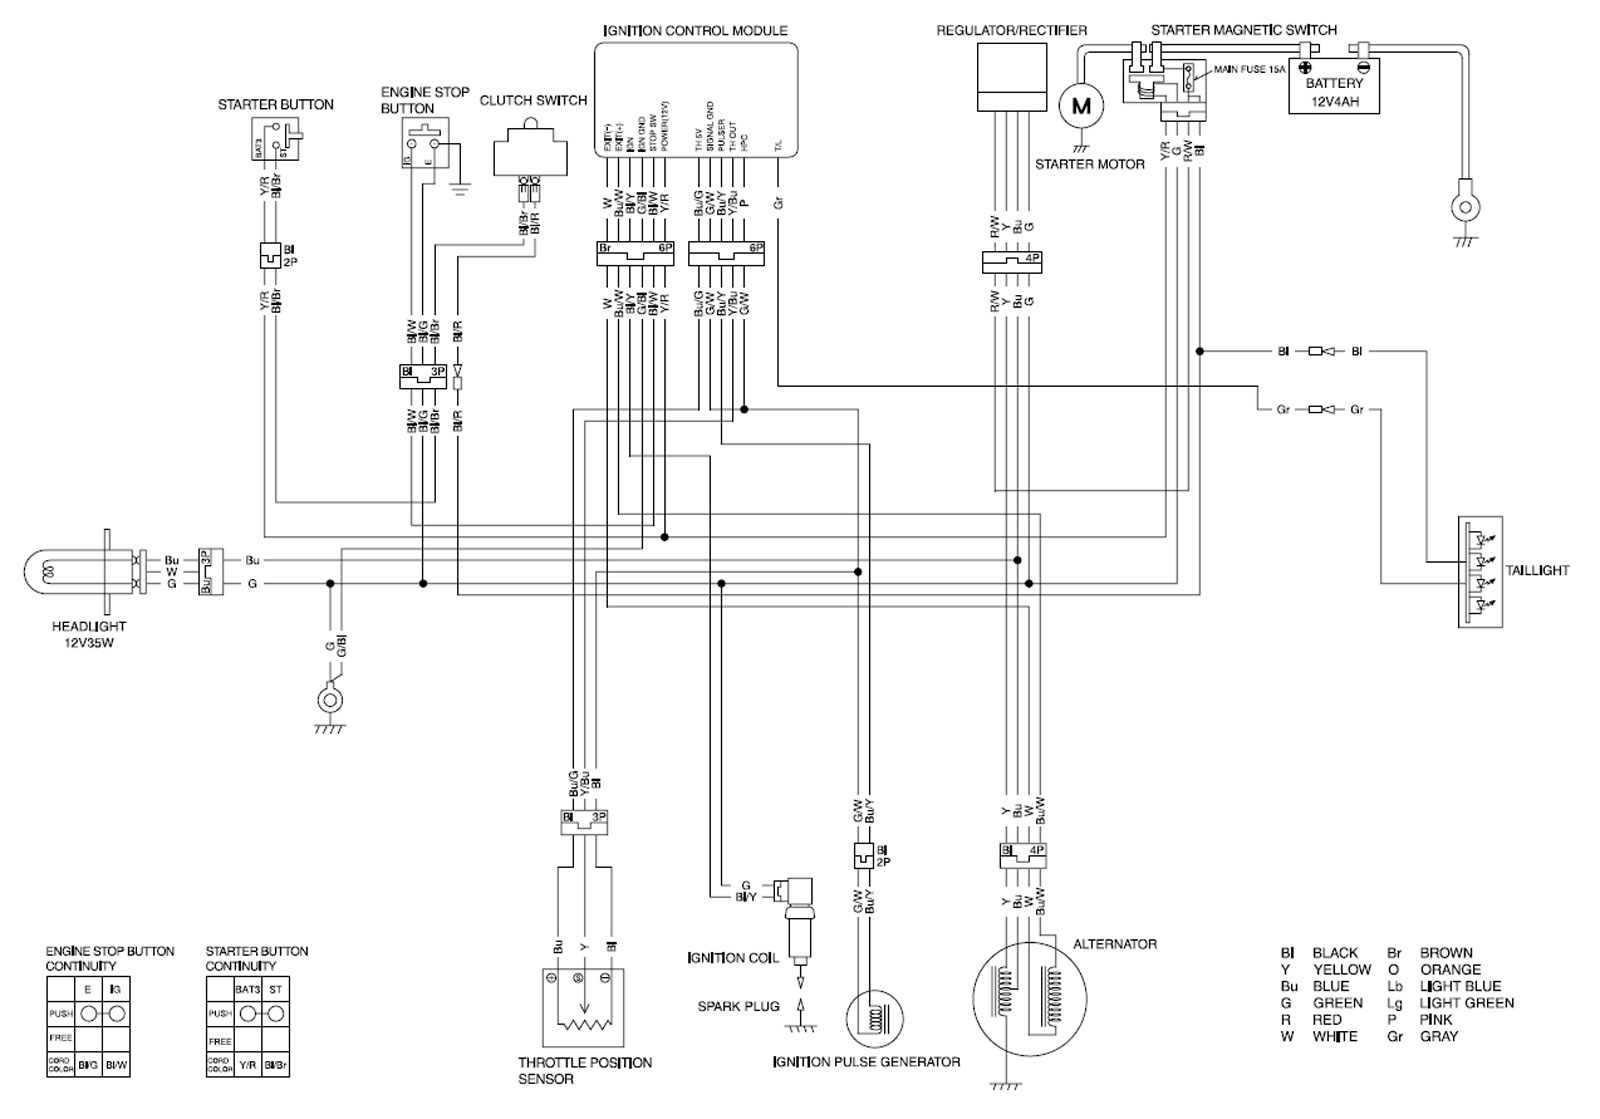 Cb1100 Wiring Diagram Data For Honda Generator Schema Diagrams Aircraft